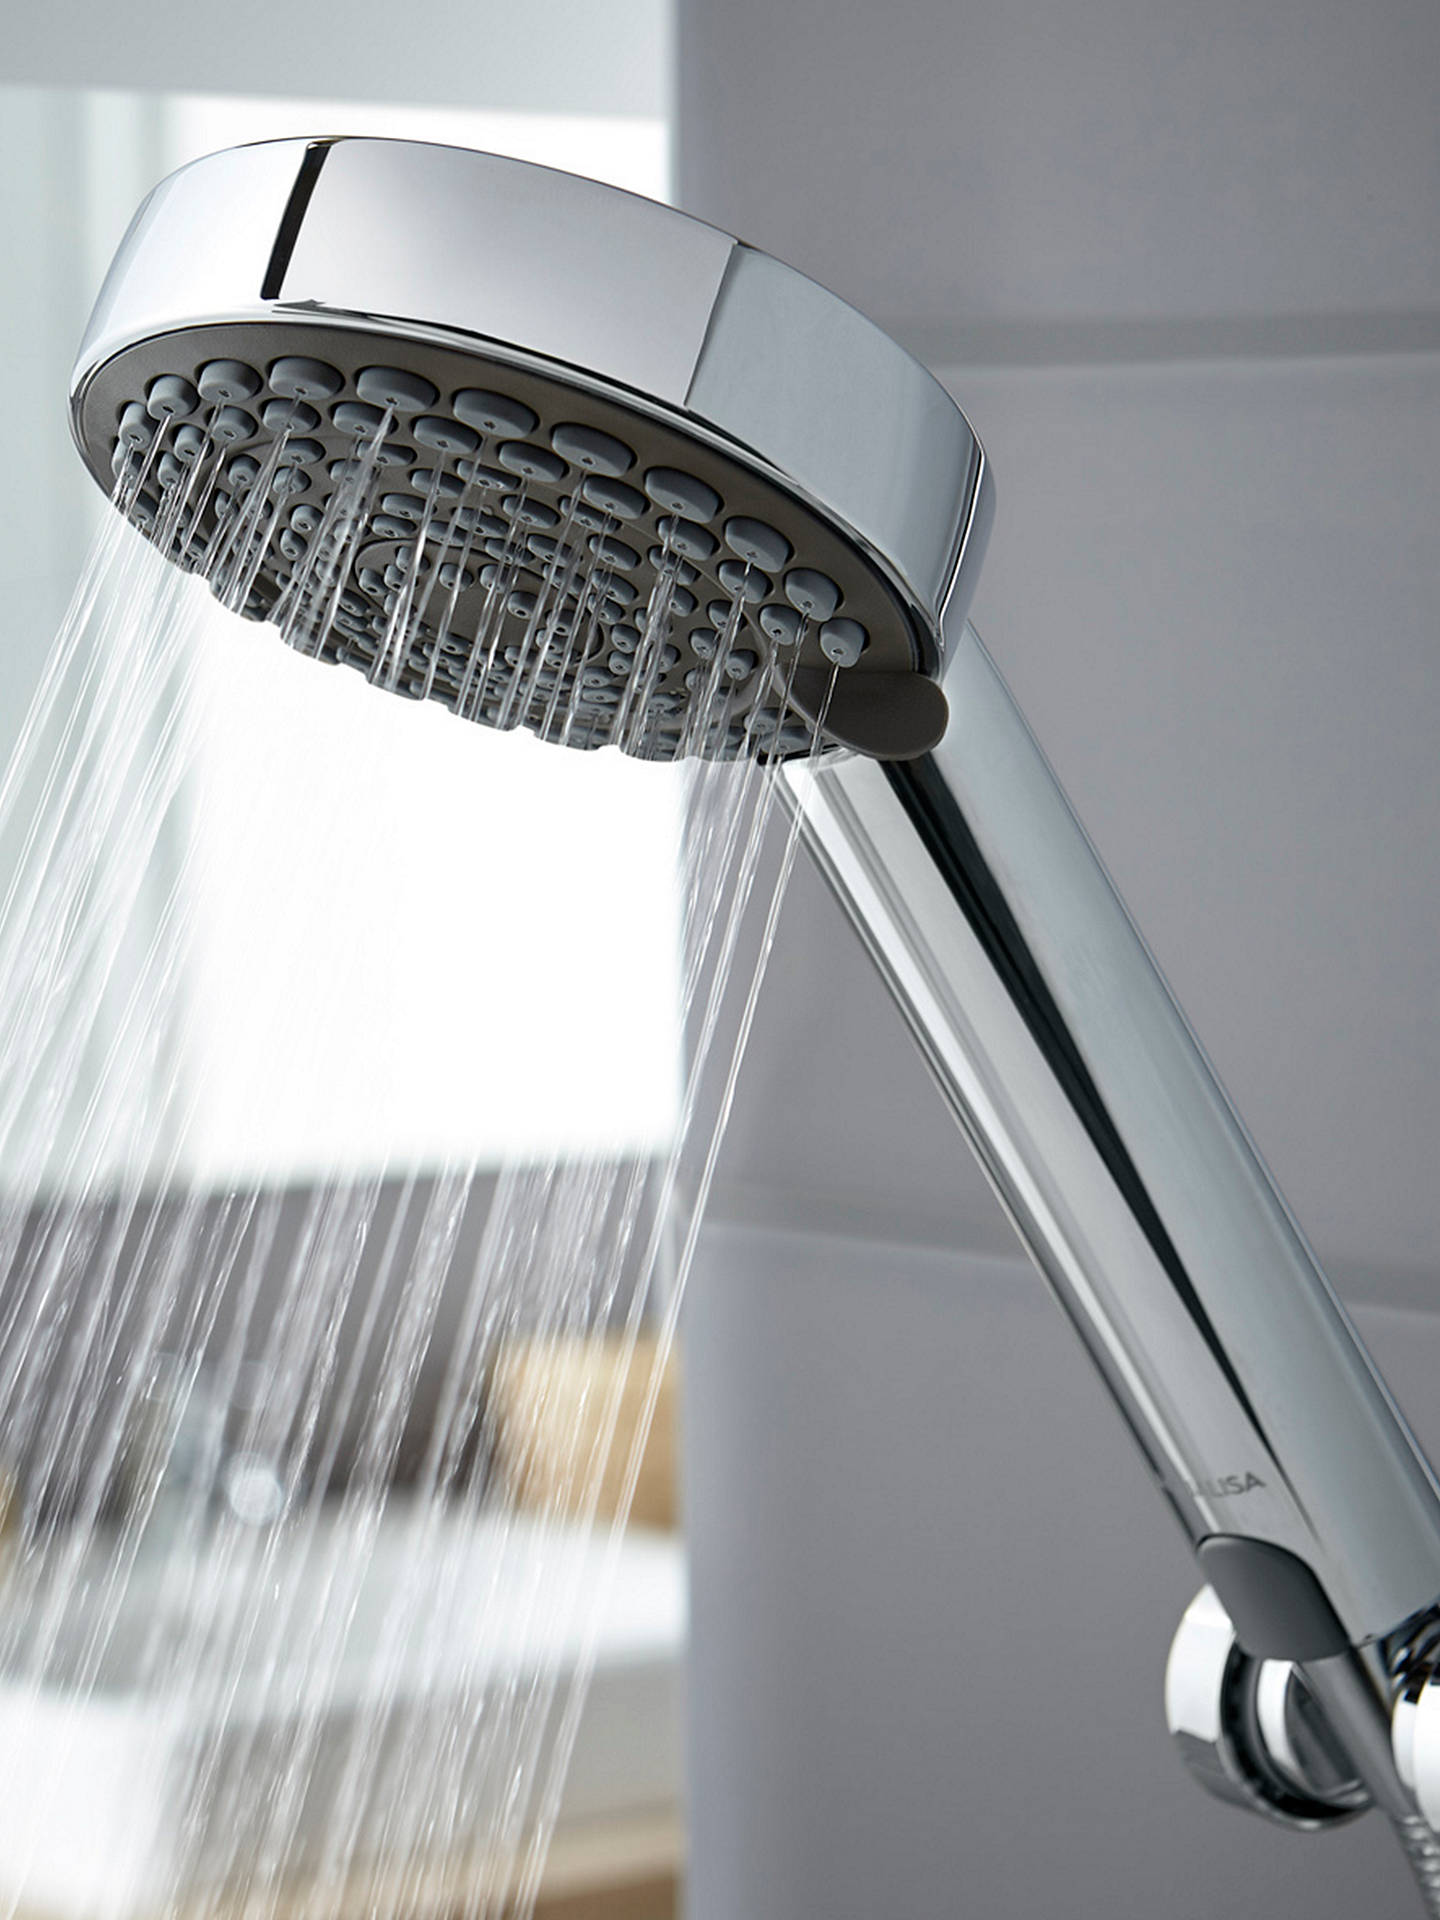 BuyAqualisa Lumi XT 8.5kW Electric Shower with Adjustable Head, Chrome Online at johnlewis.com